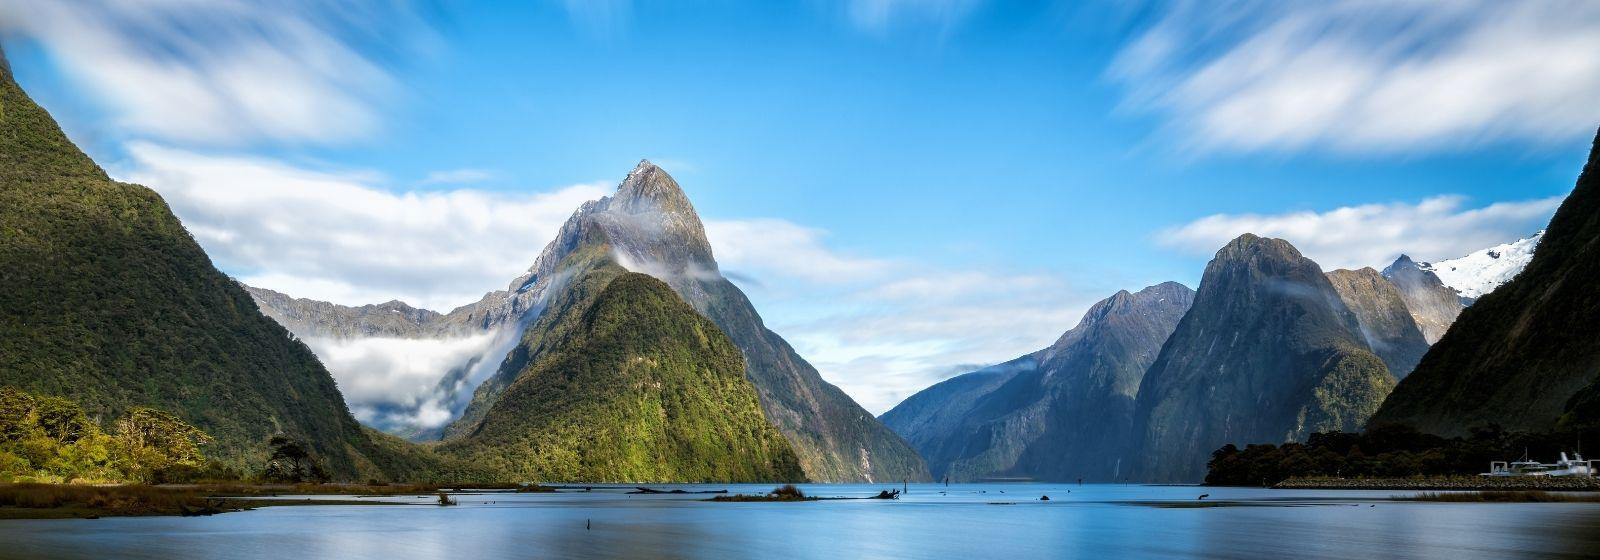 Things to do in Fiordland and Milford Sound